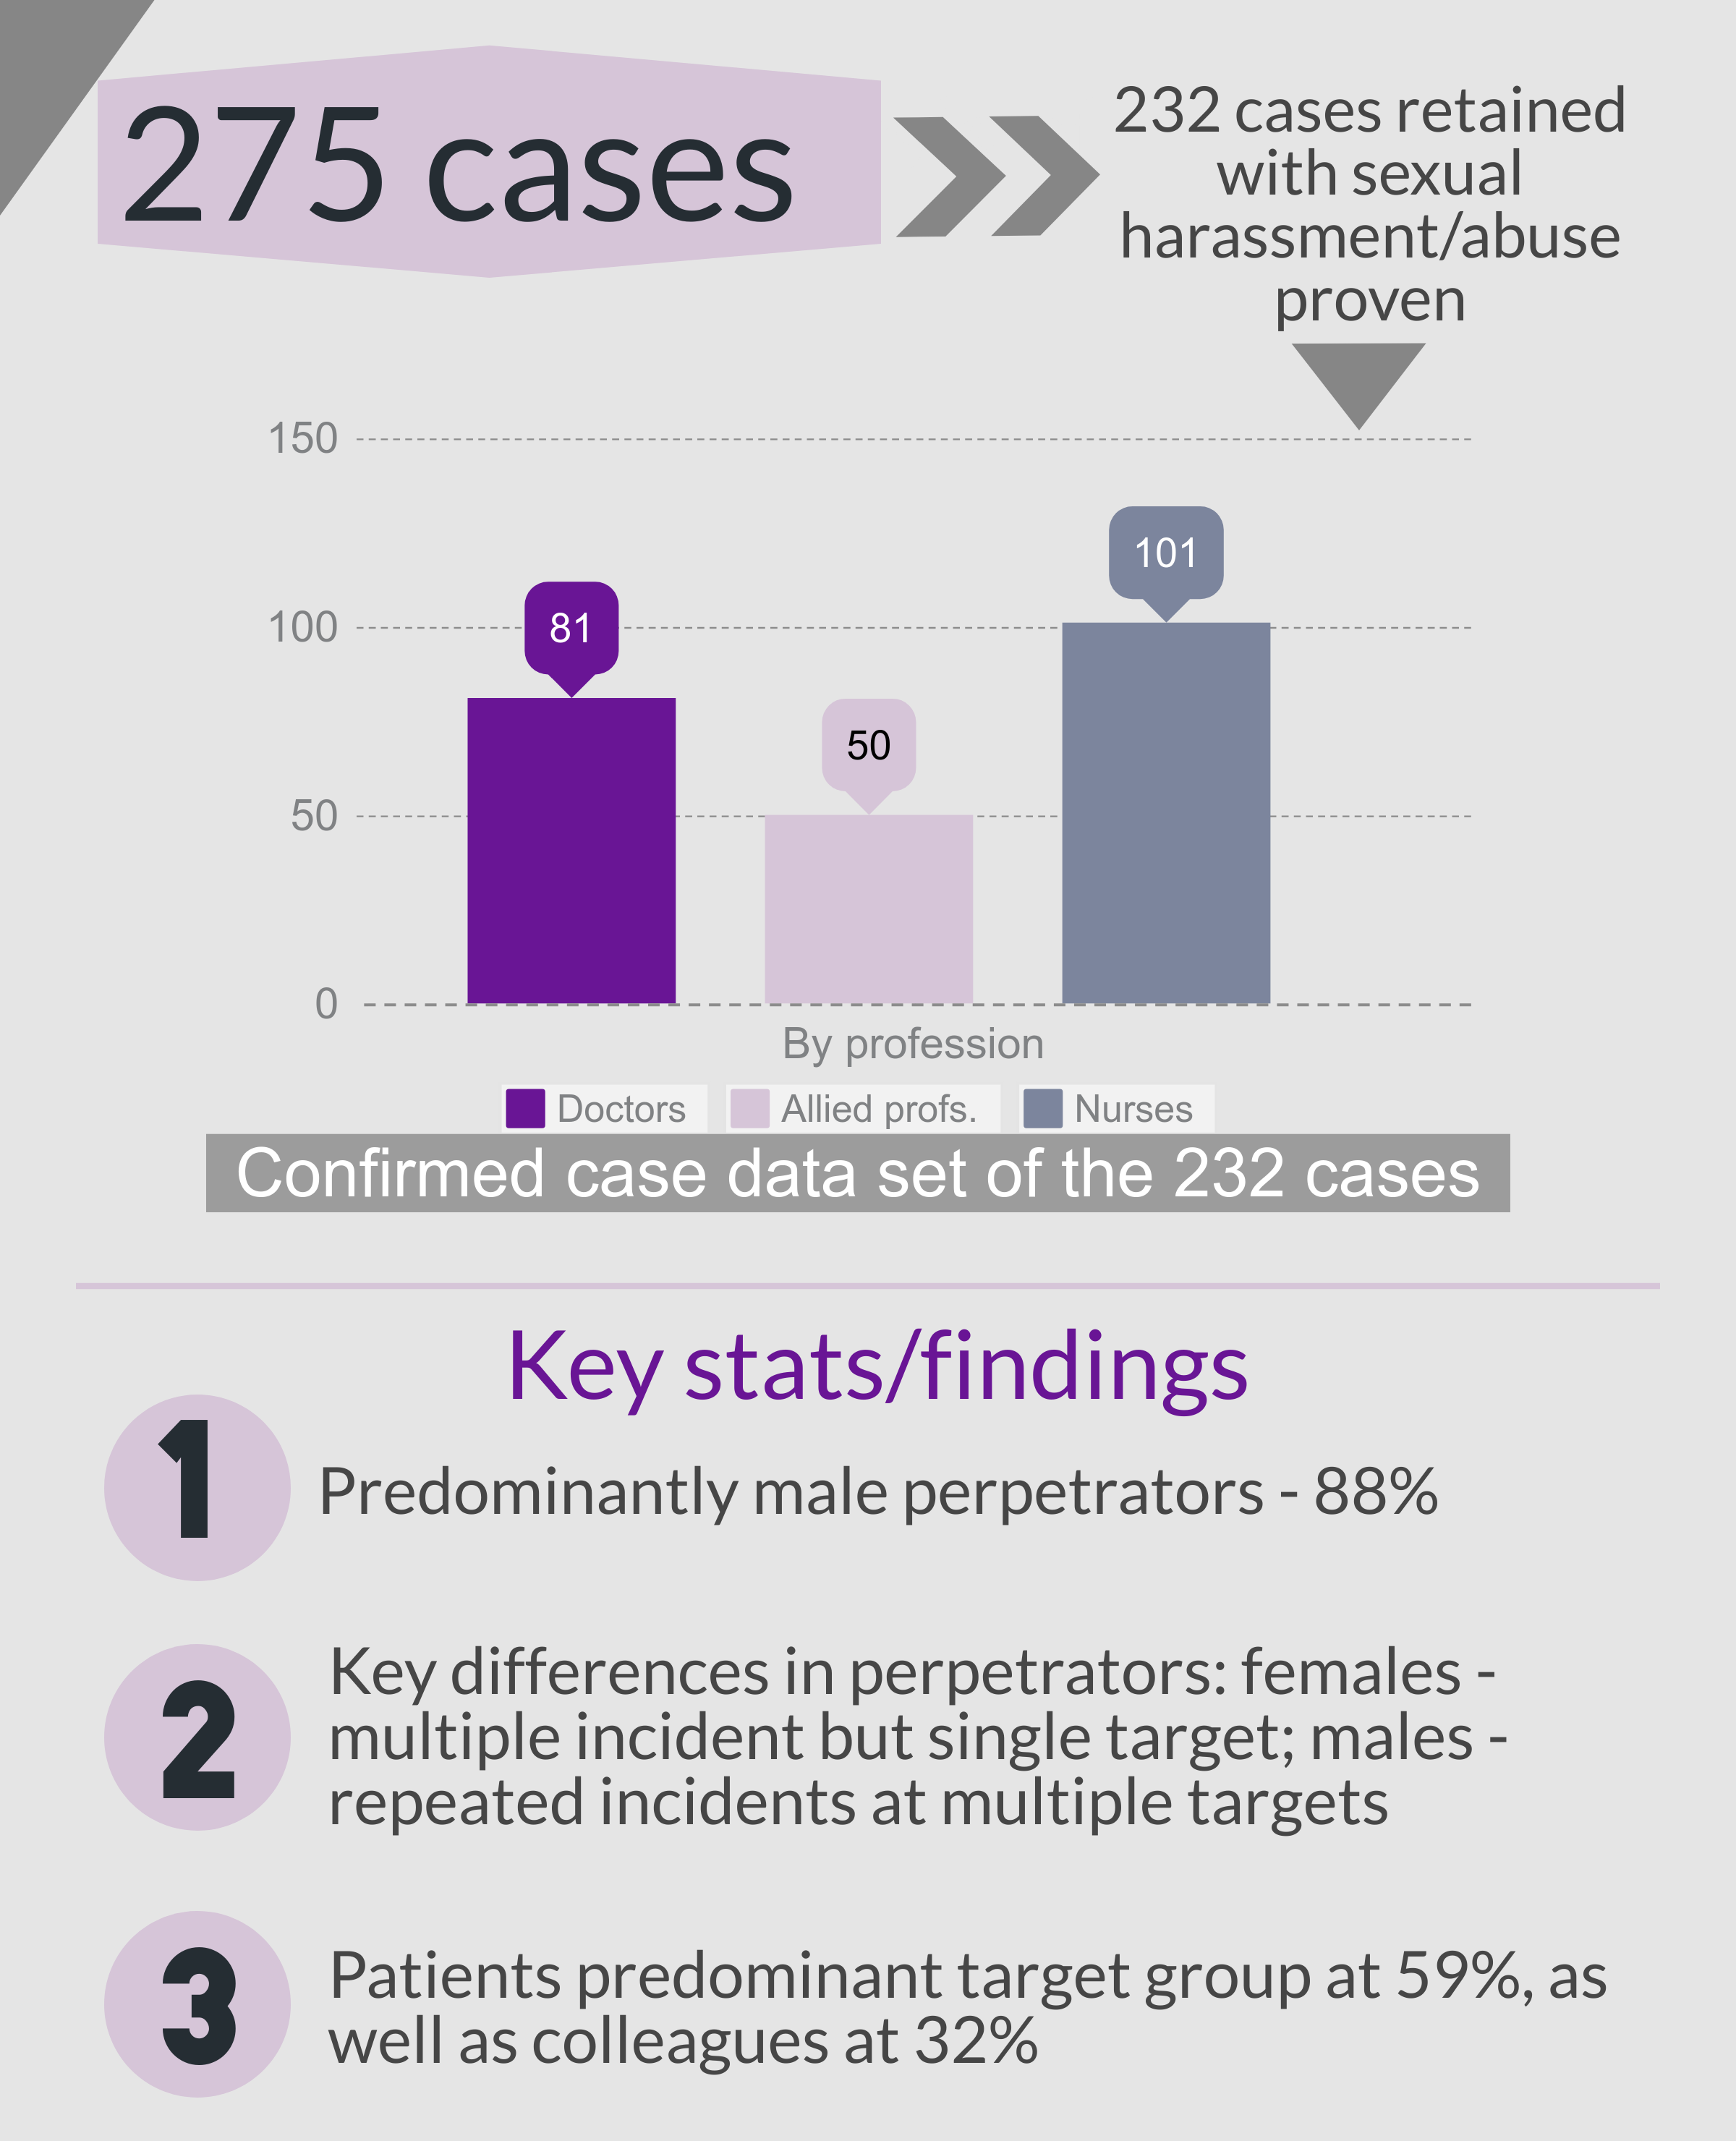 Sexual misconduct - moral mindsets stats and key findings